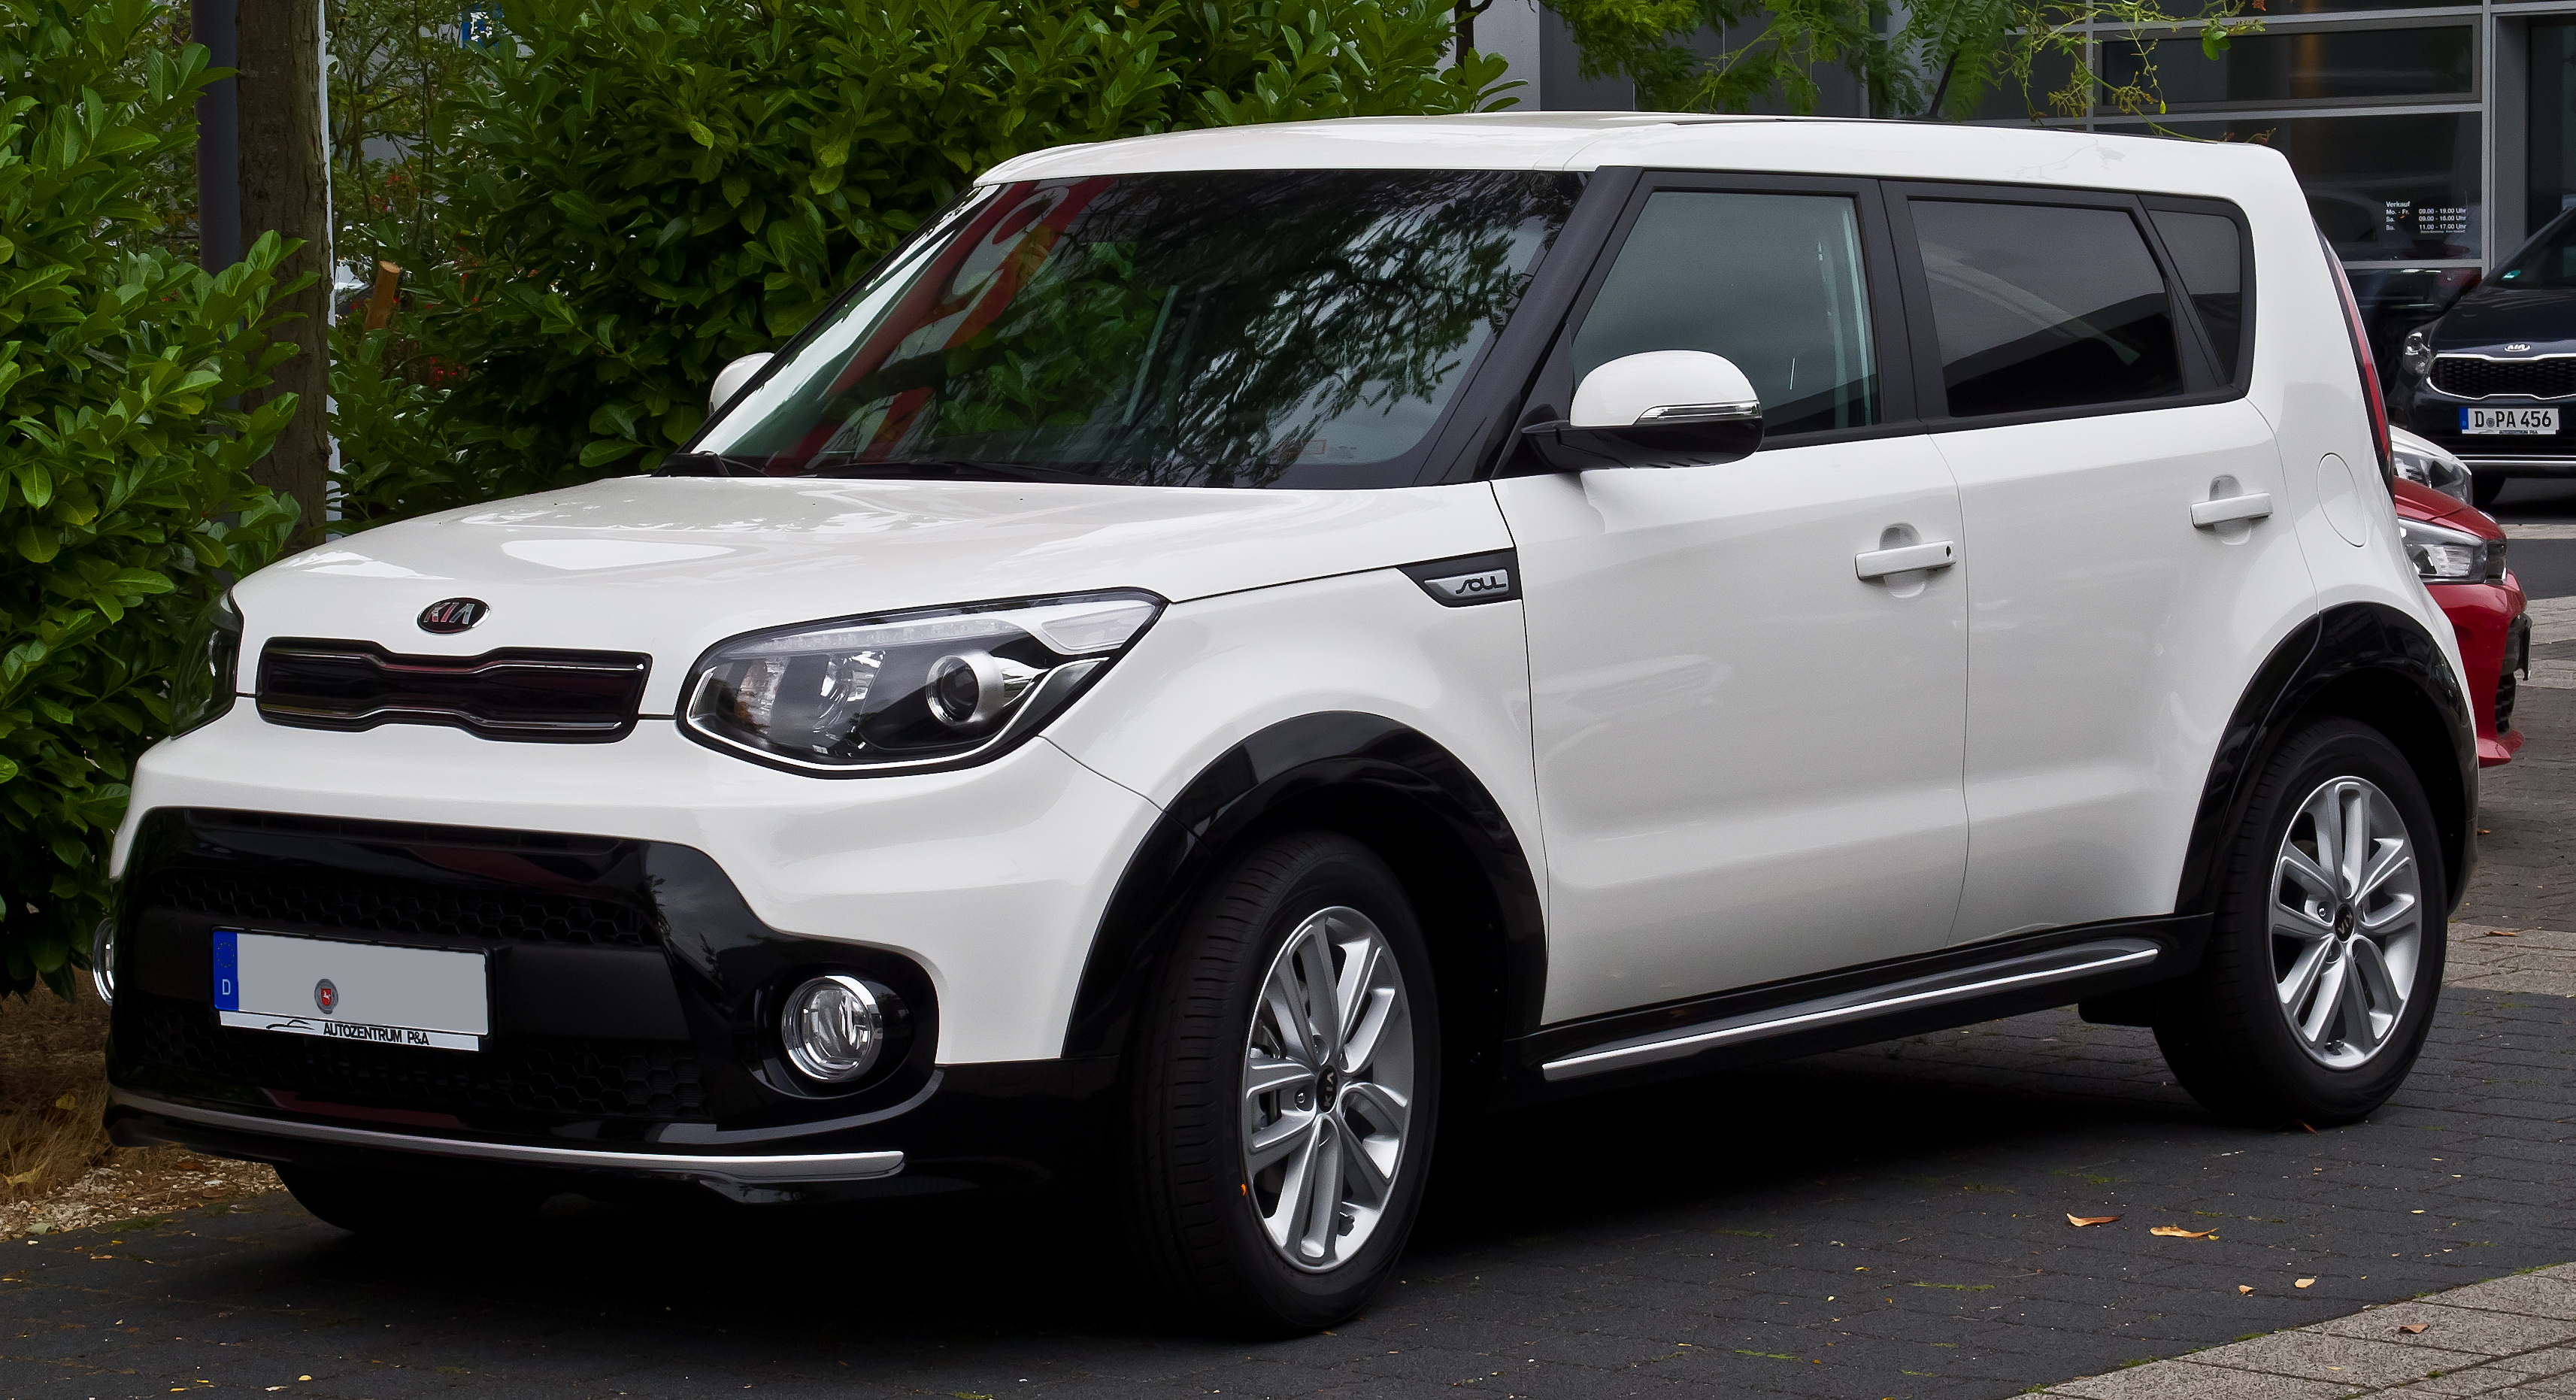 Kia Soul - Wikipedia - 2016 Kia Soul Usb Port Wiring Diagram